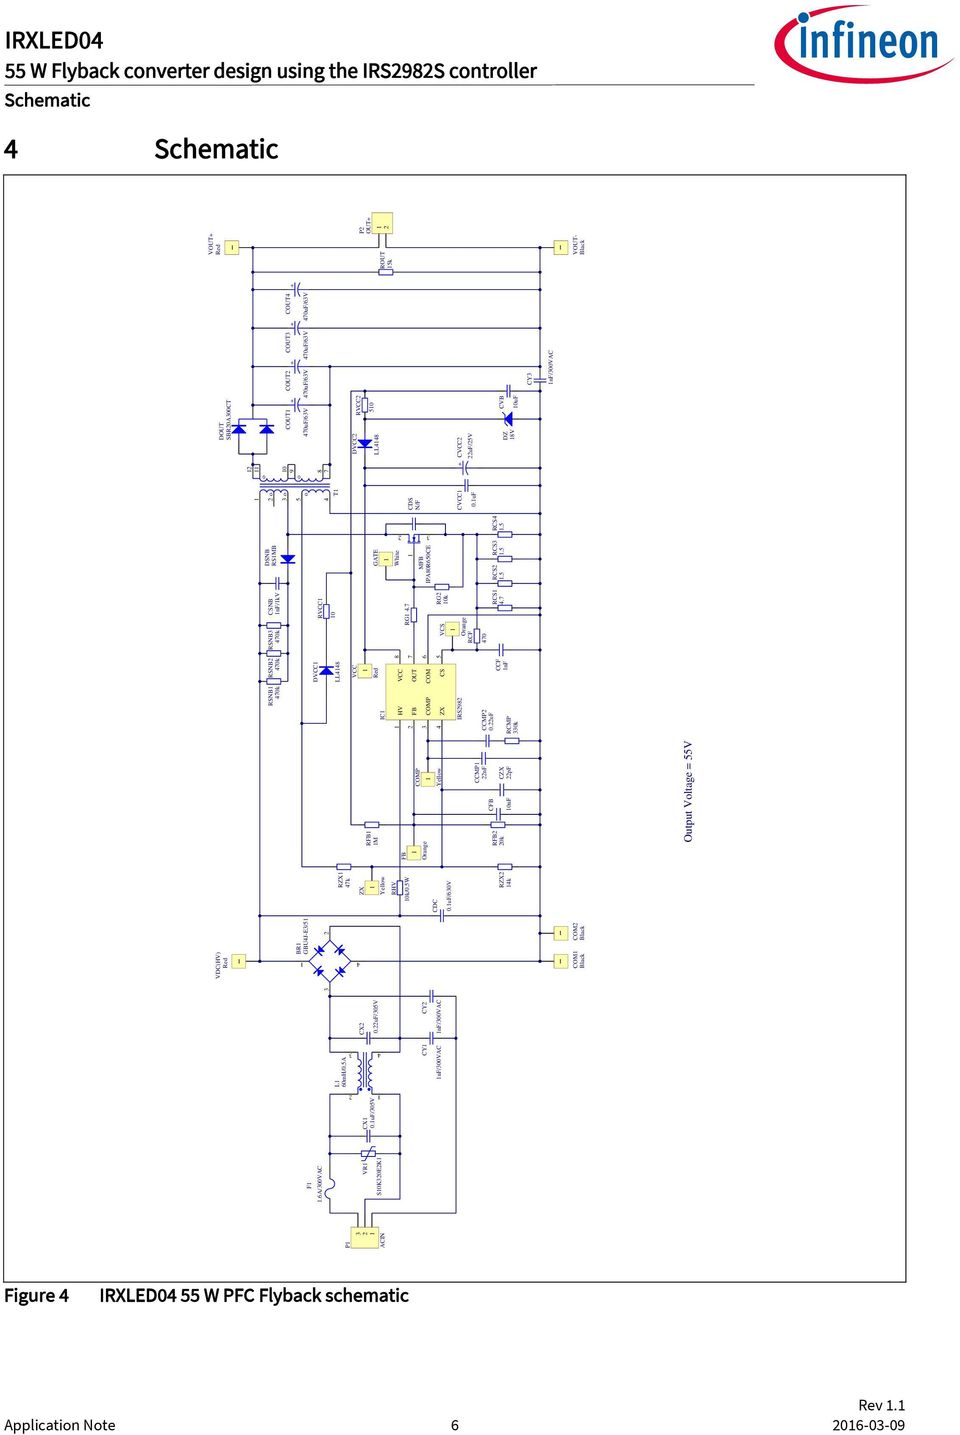 55 w flyback converter design using the irs2982s controller irxled04